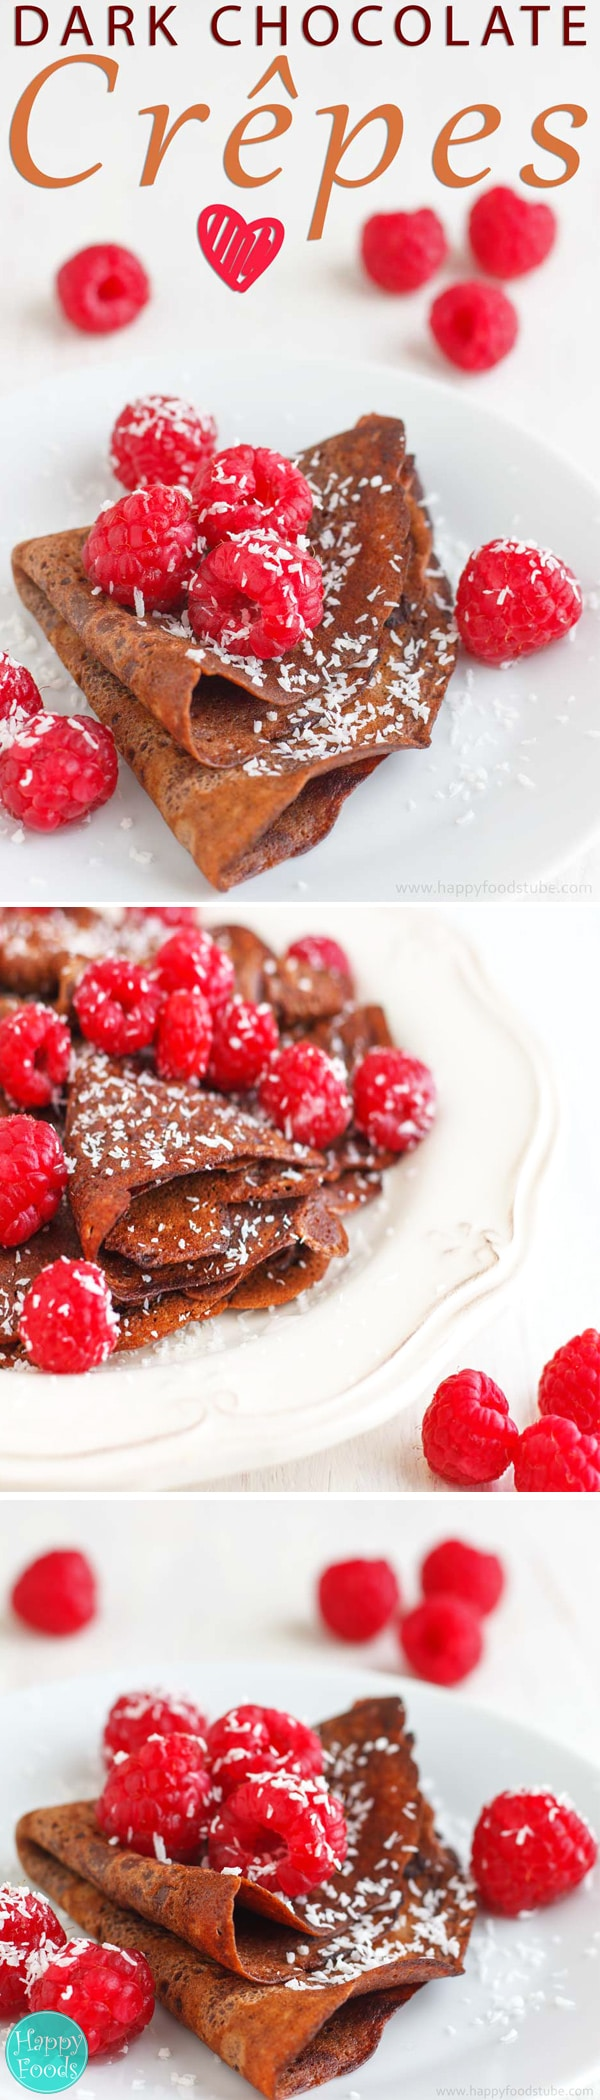 Dark Chocolate Crepes with Raspberries & Coconut - Super delicious crepes / pancakes recipe for chocolate lovers. Healthy ingredients, pancake tuesday, pancake day, vegetarian | happyfoodstube.com